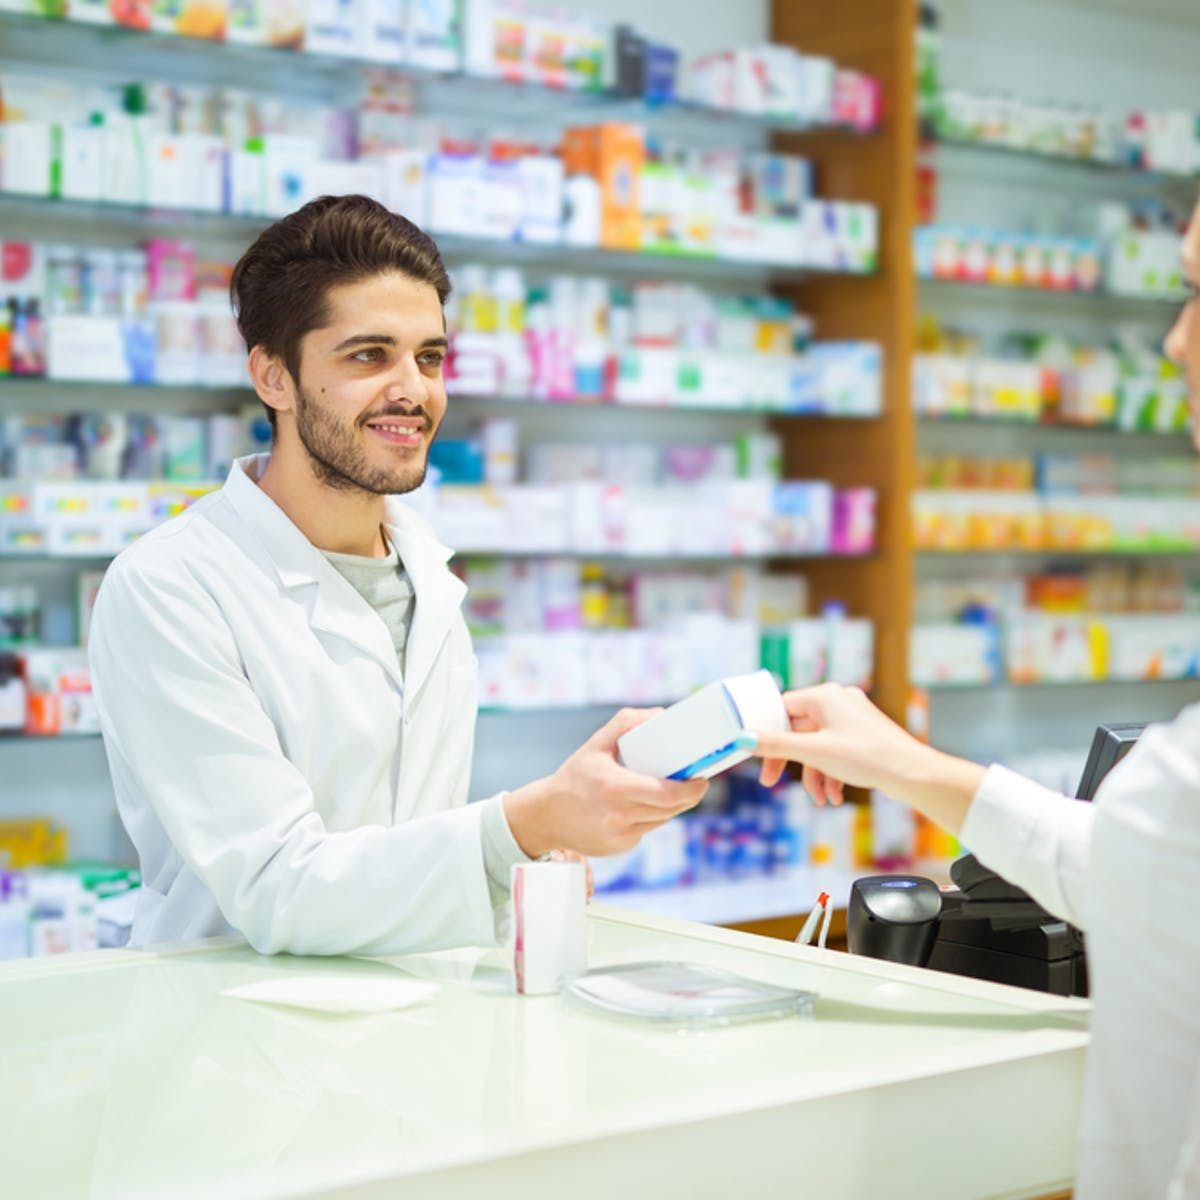 Pay pharmacists to improve our health, not just supply medicines